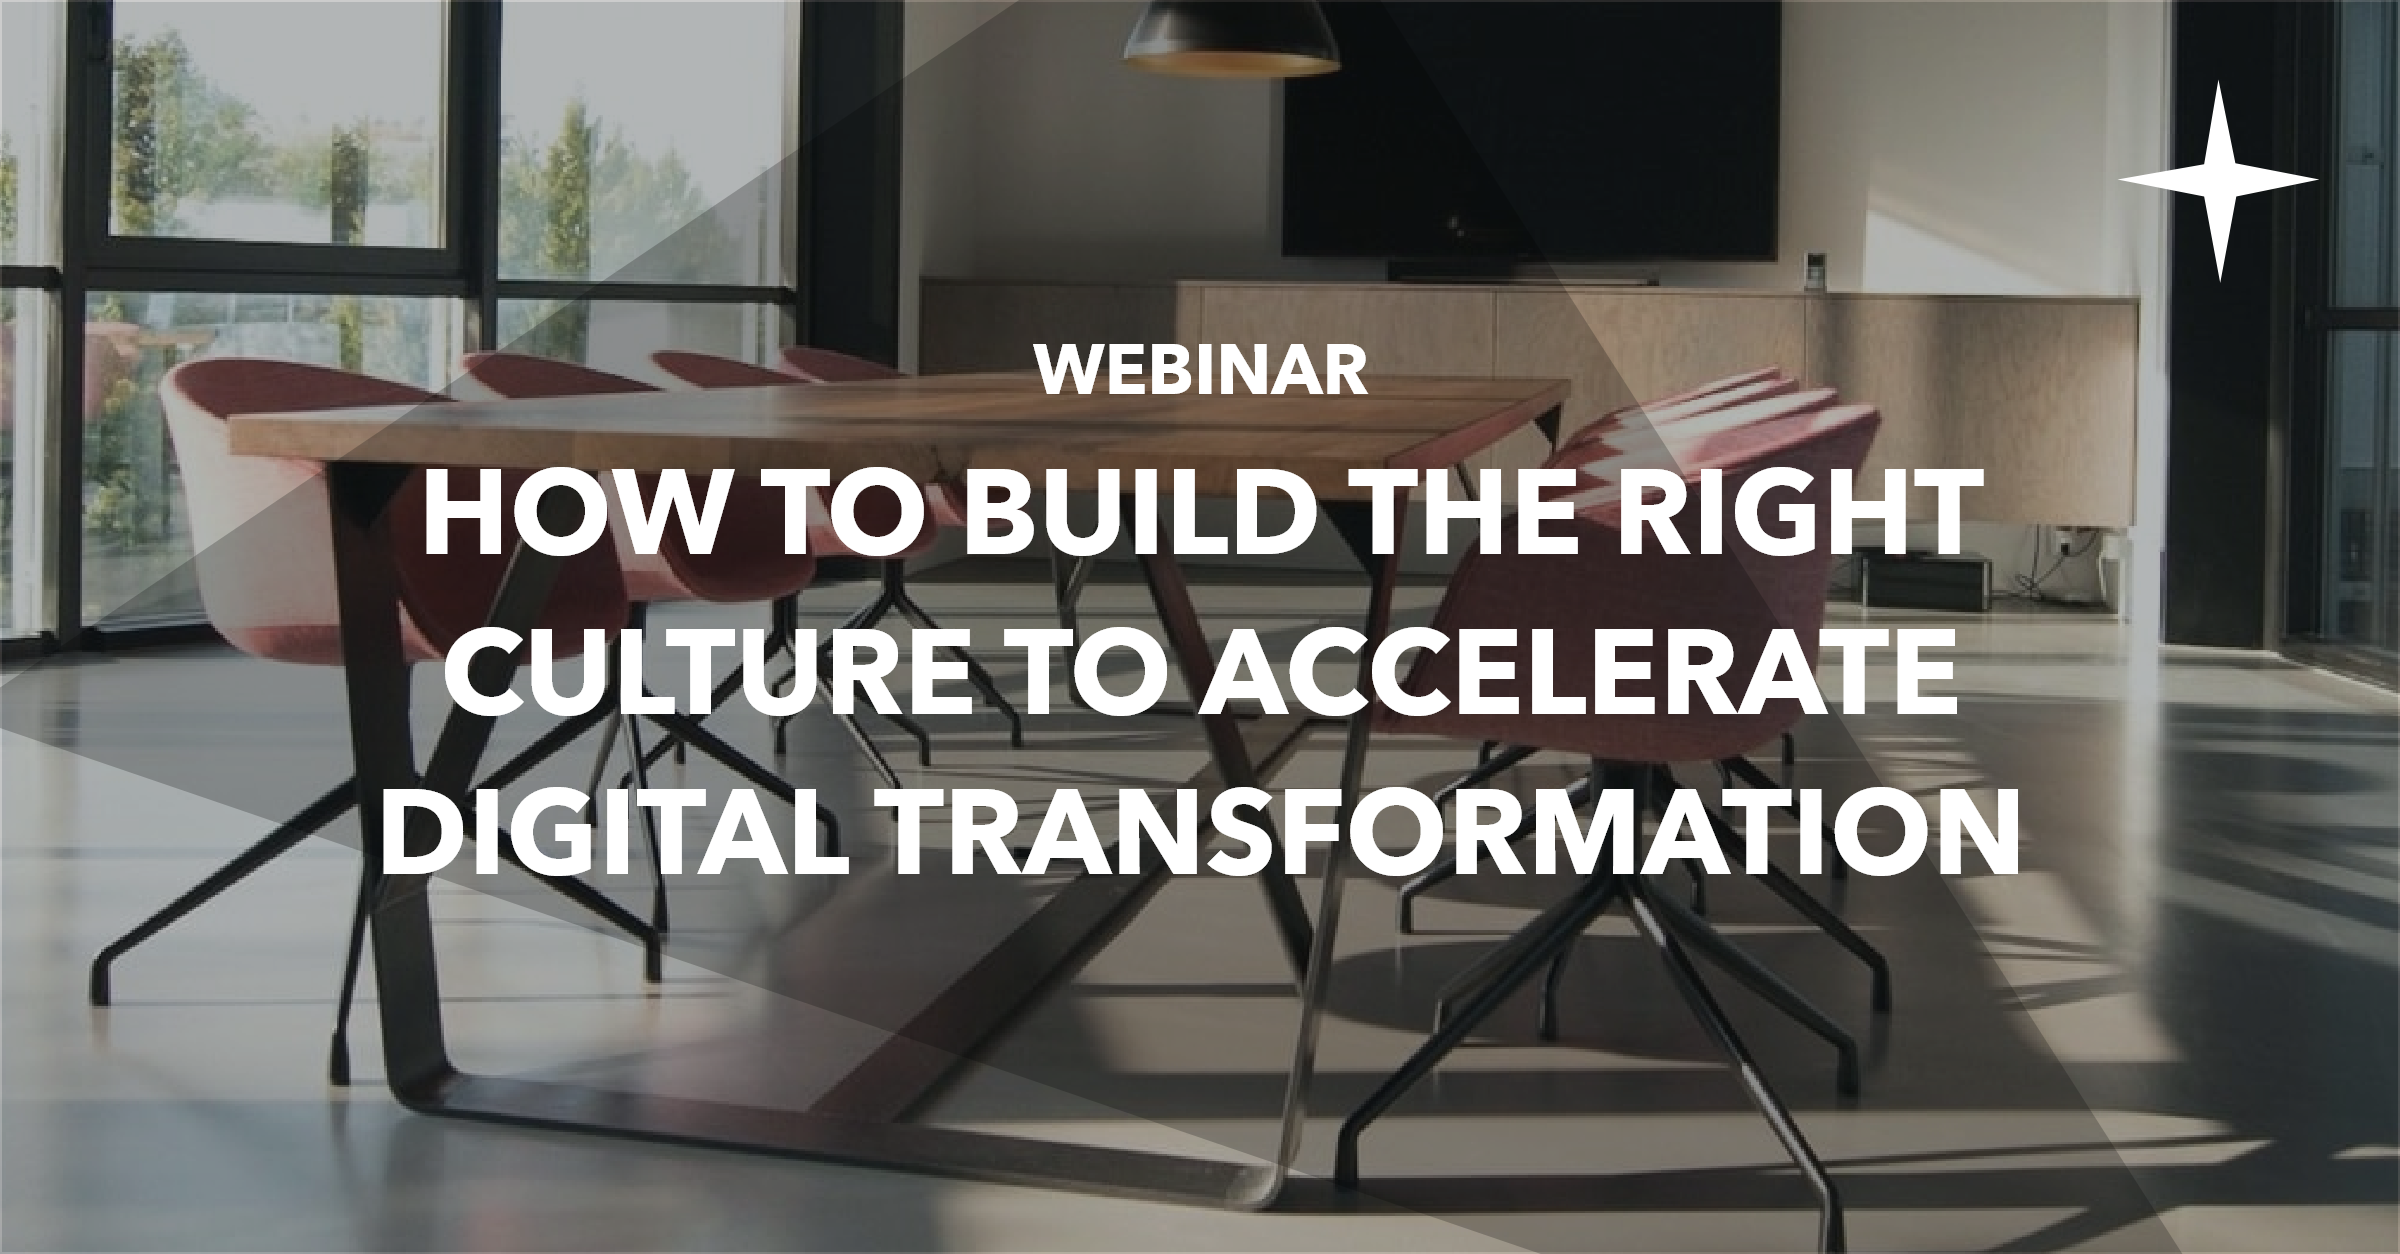 On demand webinar: How to build the right company culture to accelerate digital transformation